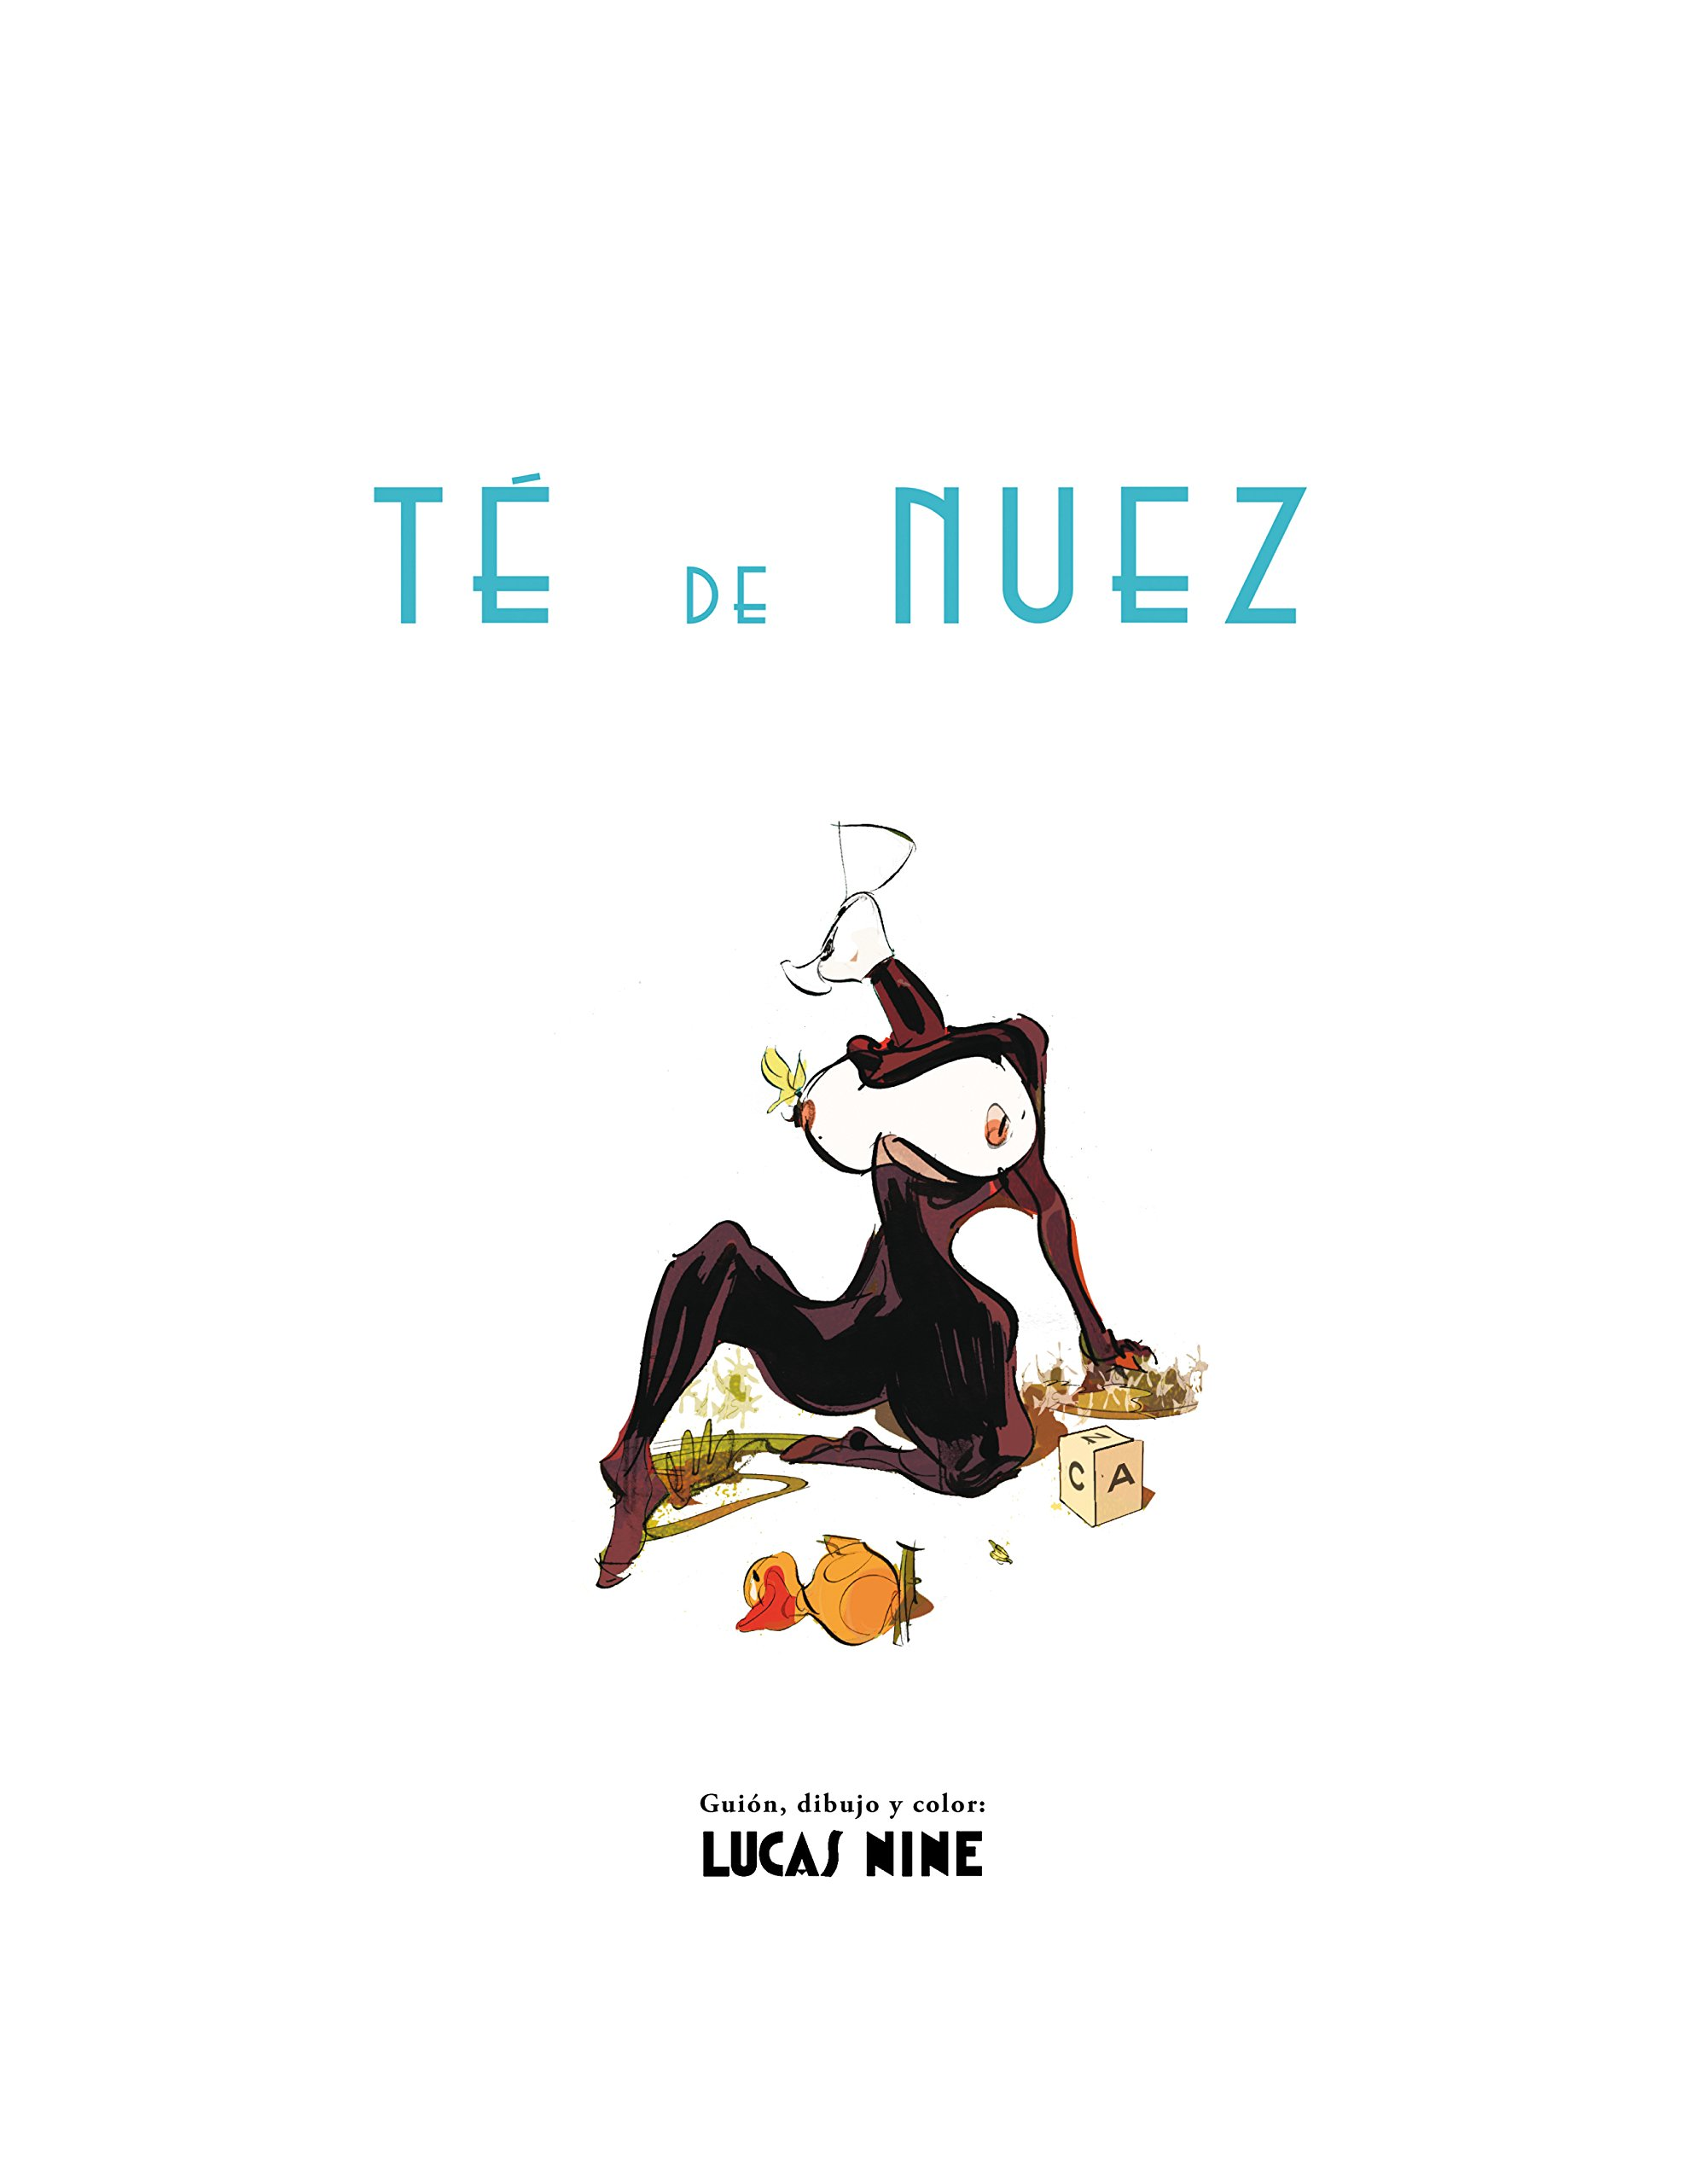 Té de Nuez (Spanish Edition): Lucas Nine, La Editorial Comun: 9789873795060: Amazon.com: Books